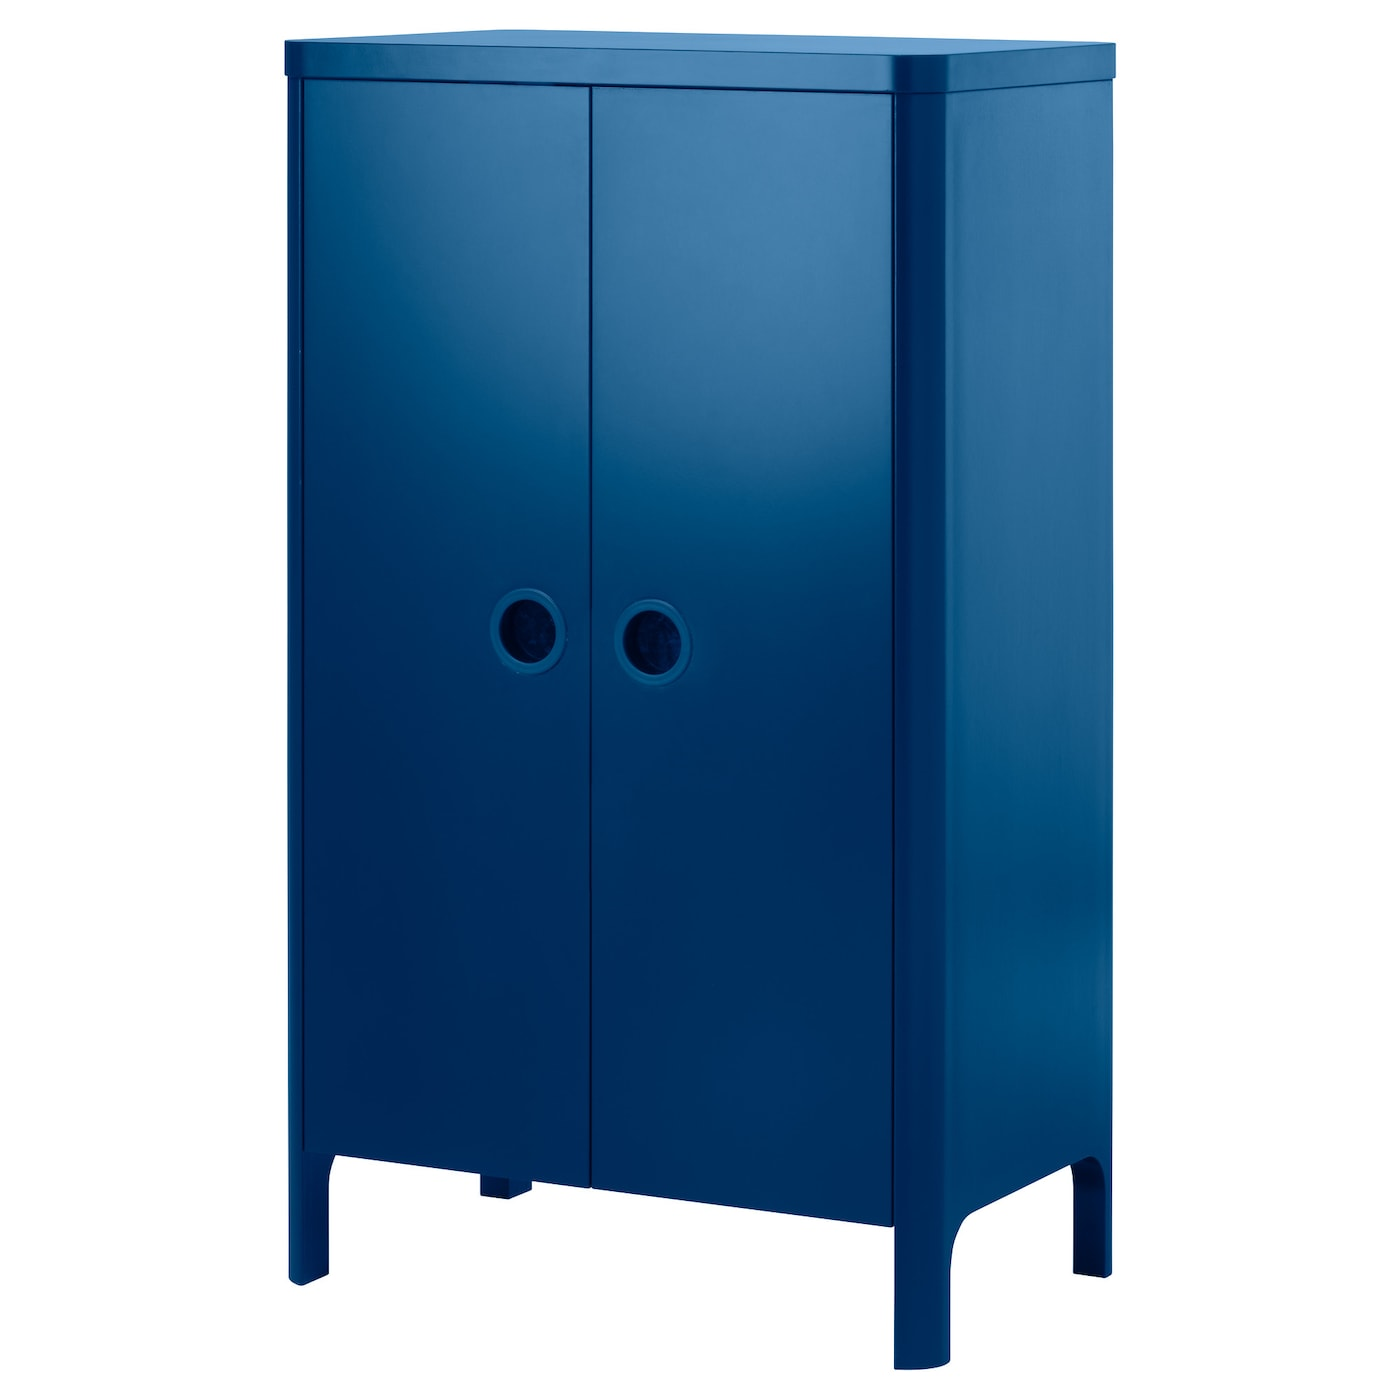 IKEA BUSUNGE wardrobe You can adjust the height of the clothes rail and shelves as your child grows.